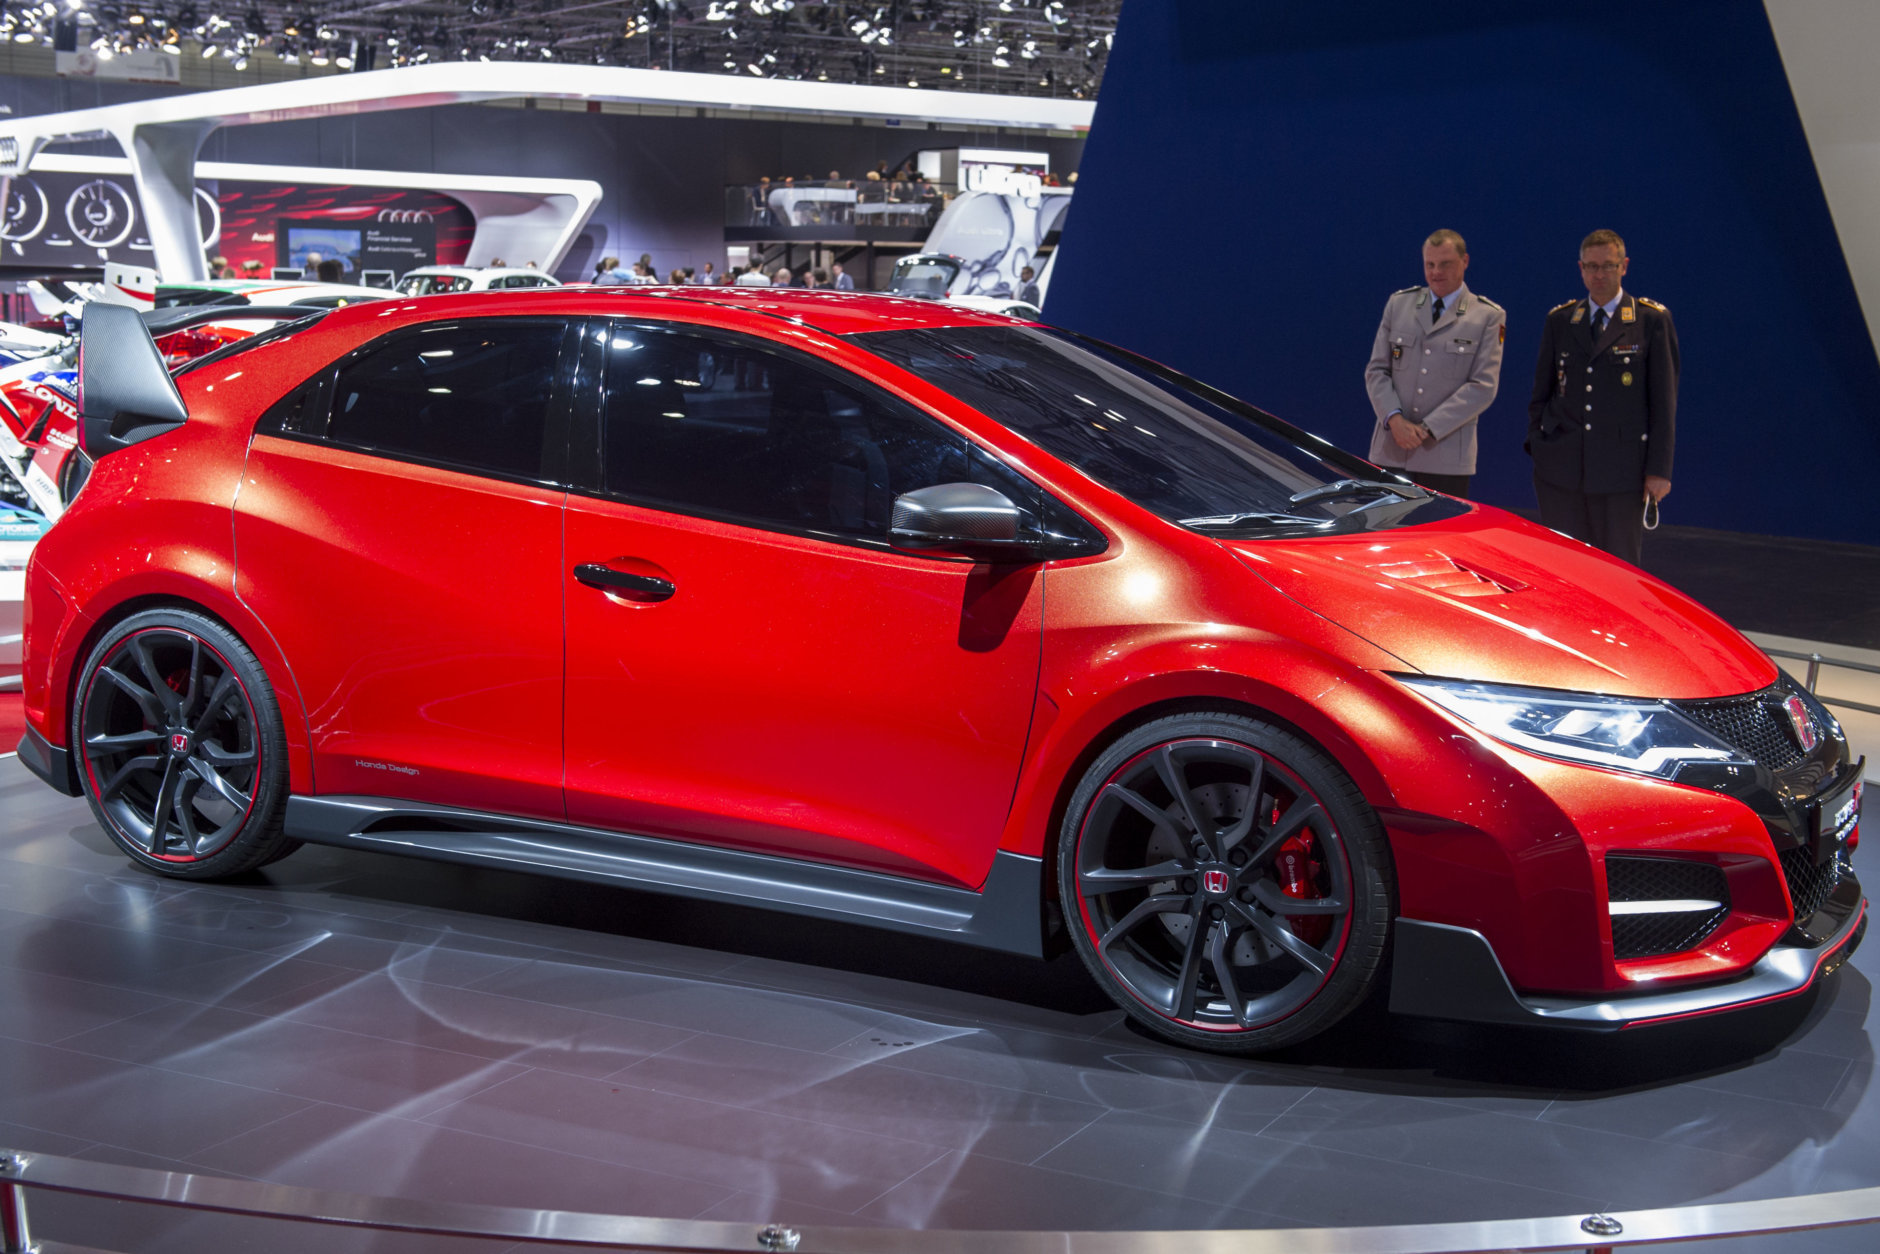 LEIPZIG, GERMANY - May 30: The new Honda Civic Type R Concept is seen at the 2014 AMI Auto Show on May 30, 2014 in Leipzig, Germany. The show will be open to the public from May 31 through June 8 and features over 50 premieres. (Photo by Jens Schlueter/Getty Images)